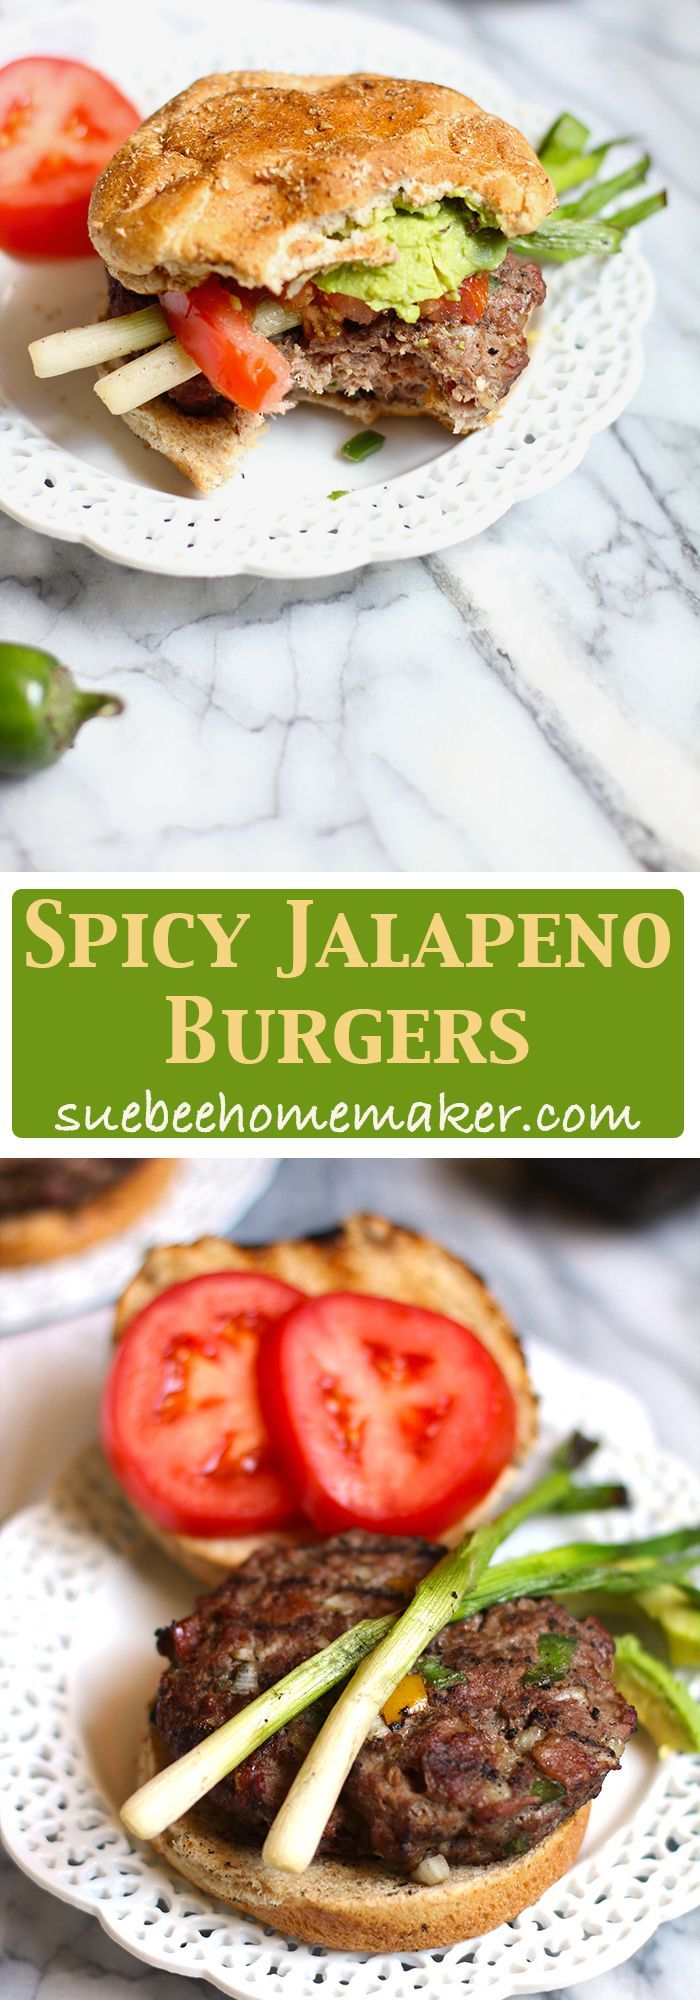 Spicy Jalapeño Burgers combine ground sirloin with diced onions, bell peppers, and jalapeño peppers, making these moist and moderately spicy!